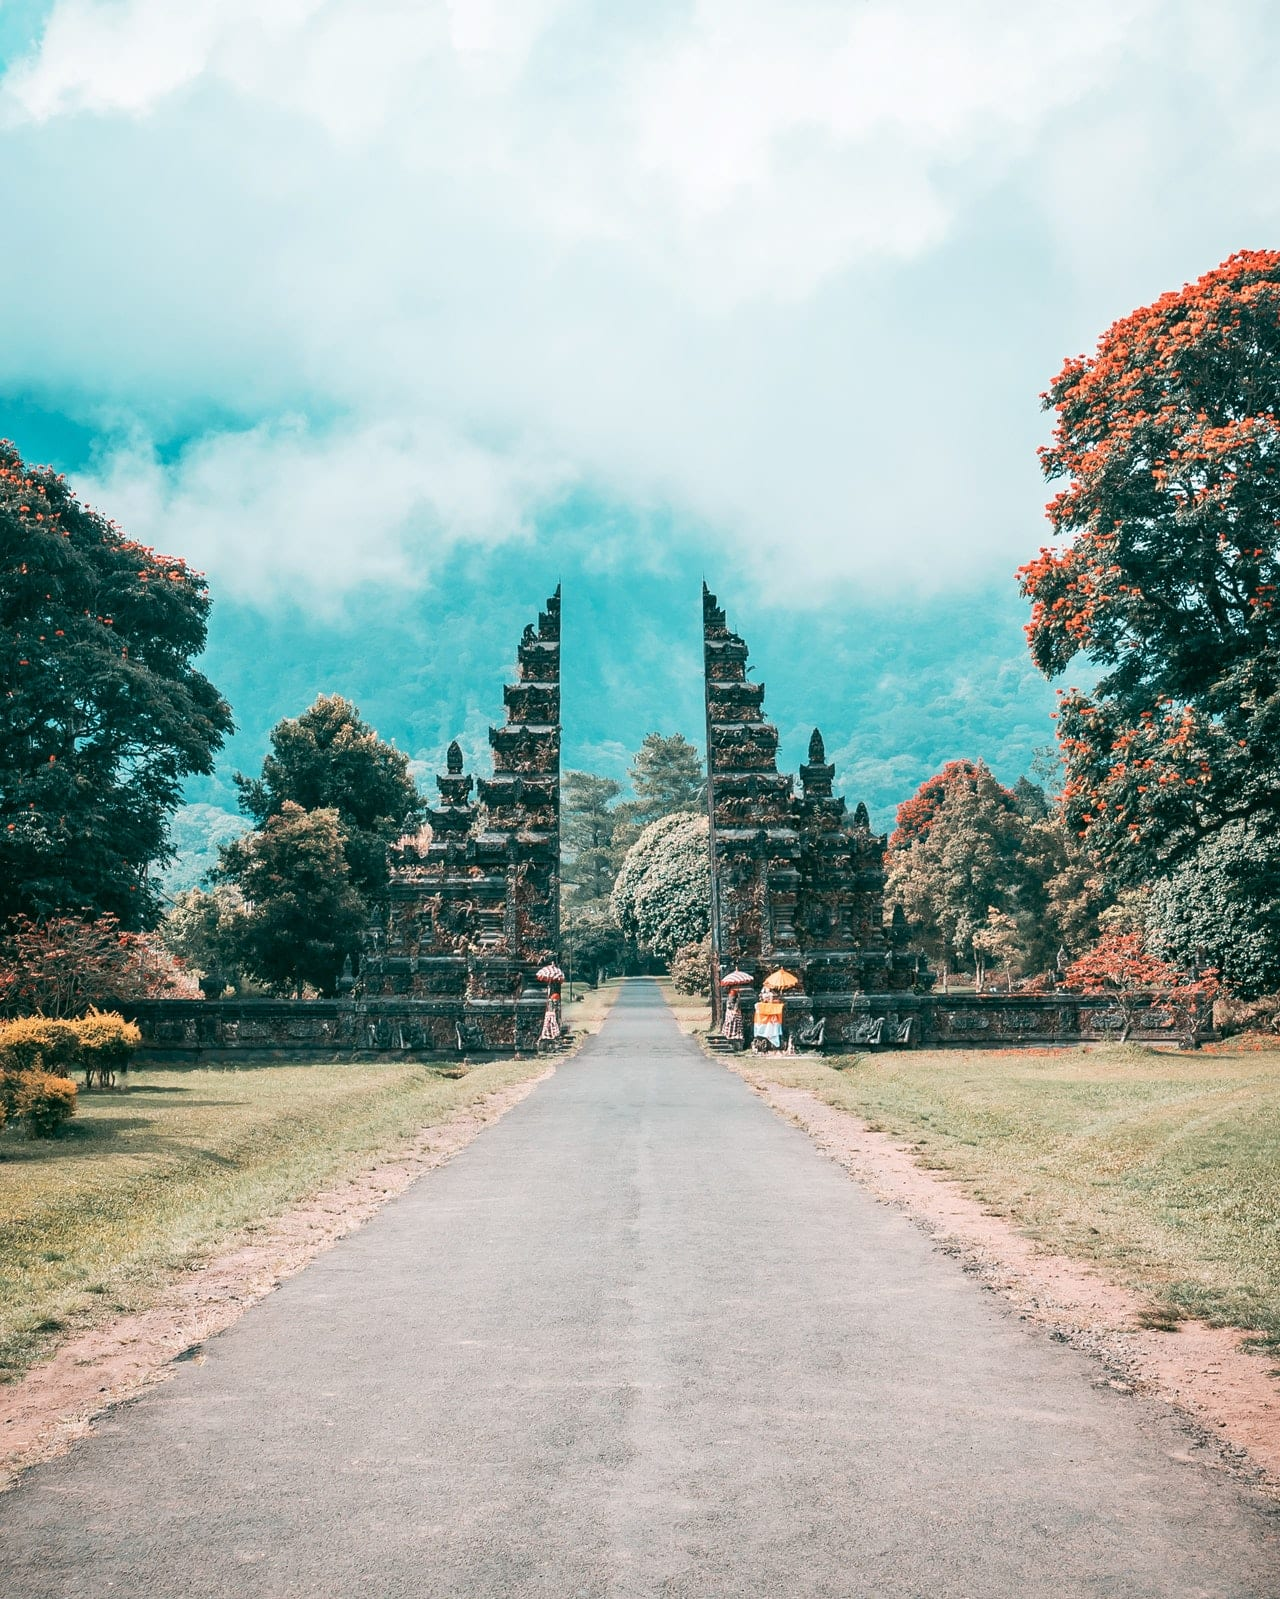 10-Things-You-Must-Do-In-Bali2